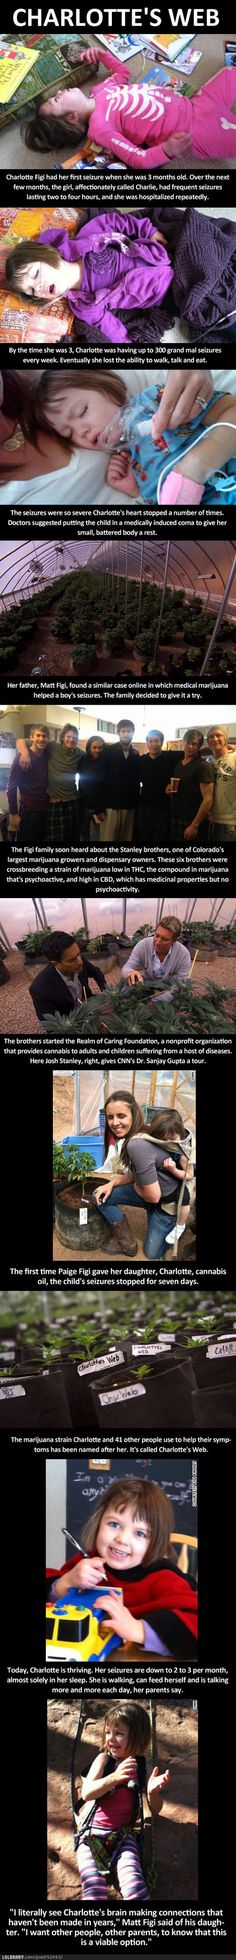 This is AMAZING, regardless of how you feel about marijuana it has saved this little girl!